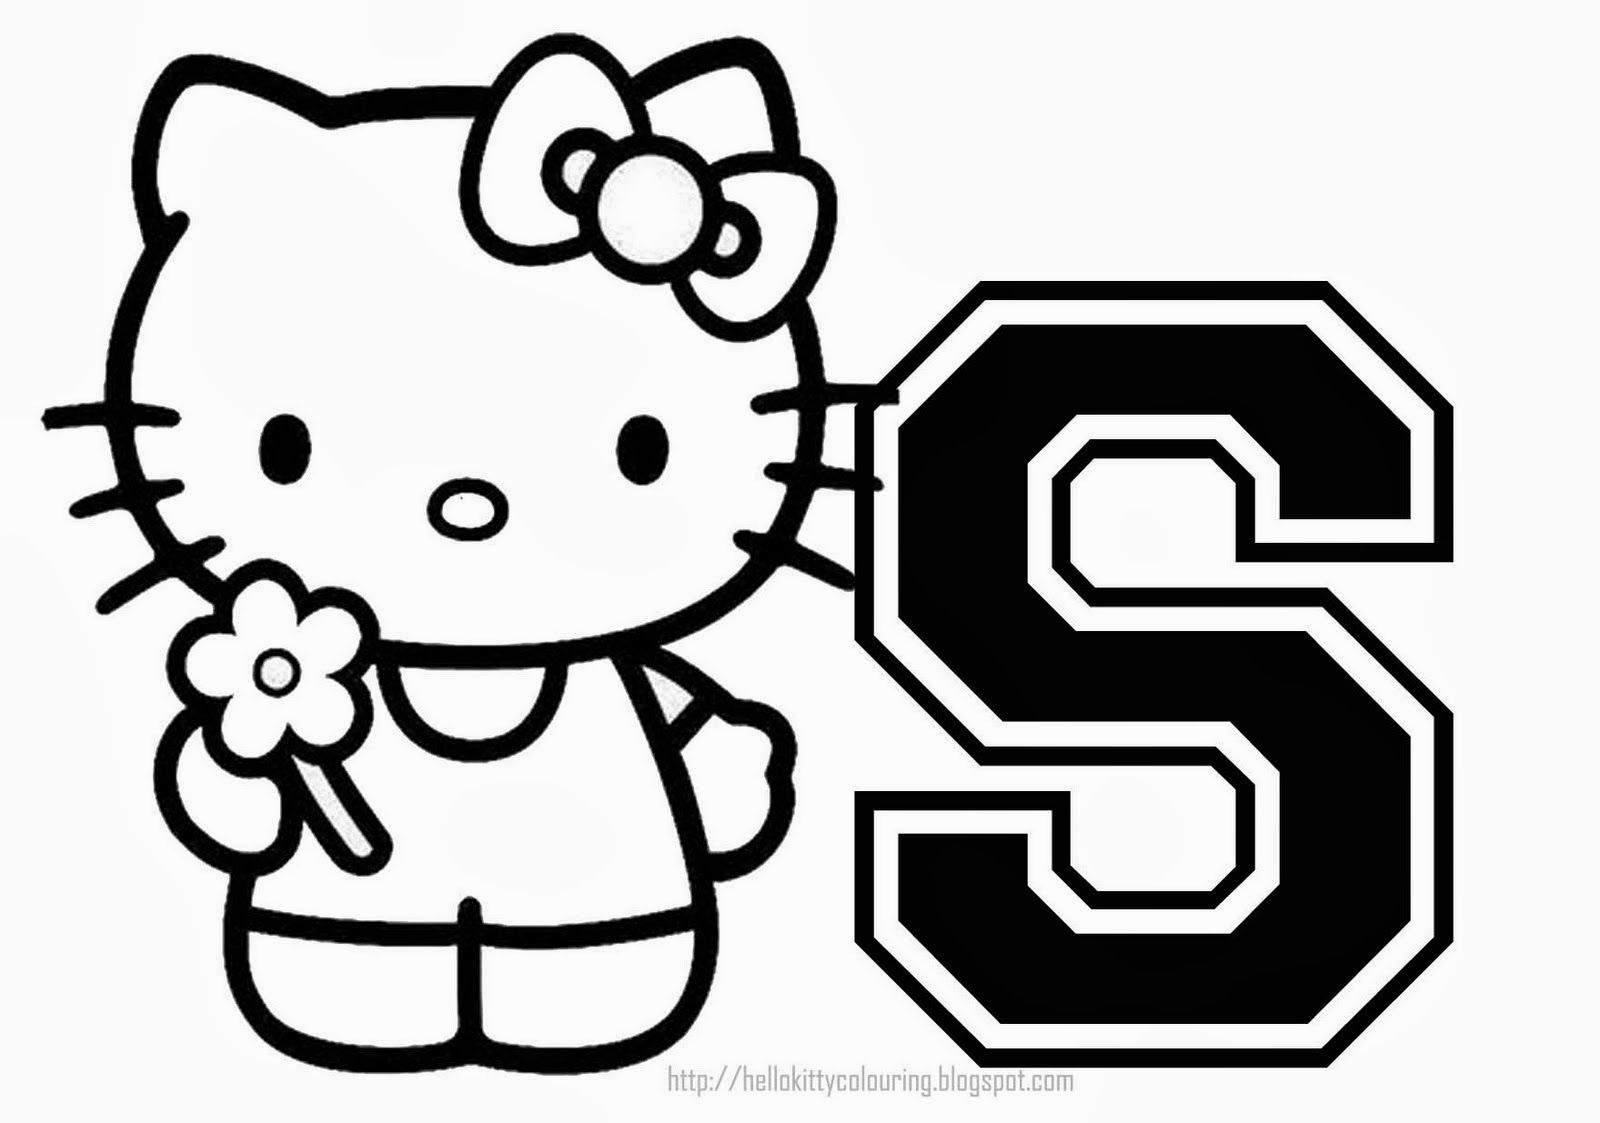 Hello Kitty Coloring Alphabet For. Hello Kitty Alphabet Coloring - Free Printable Hello Kitty Alphabet Letters